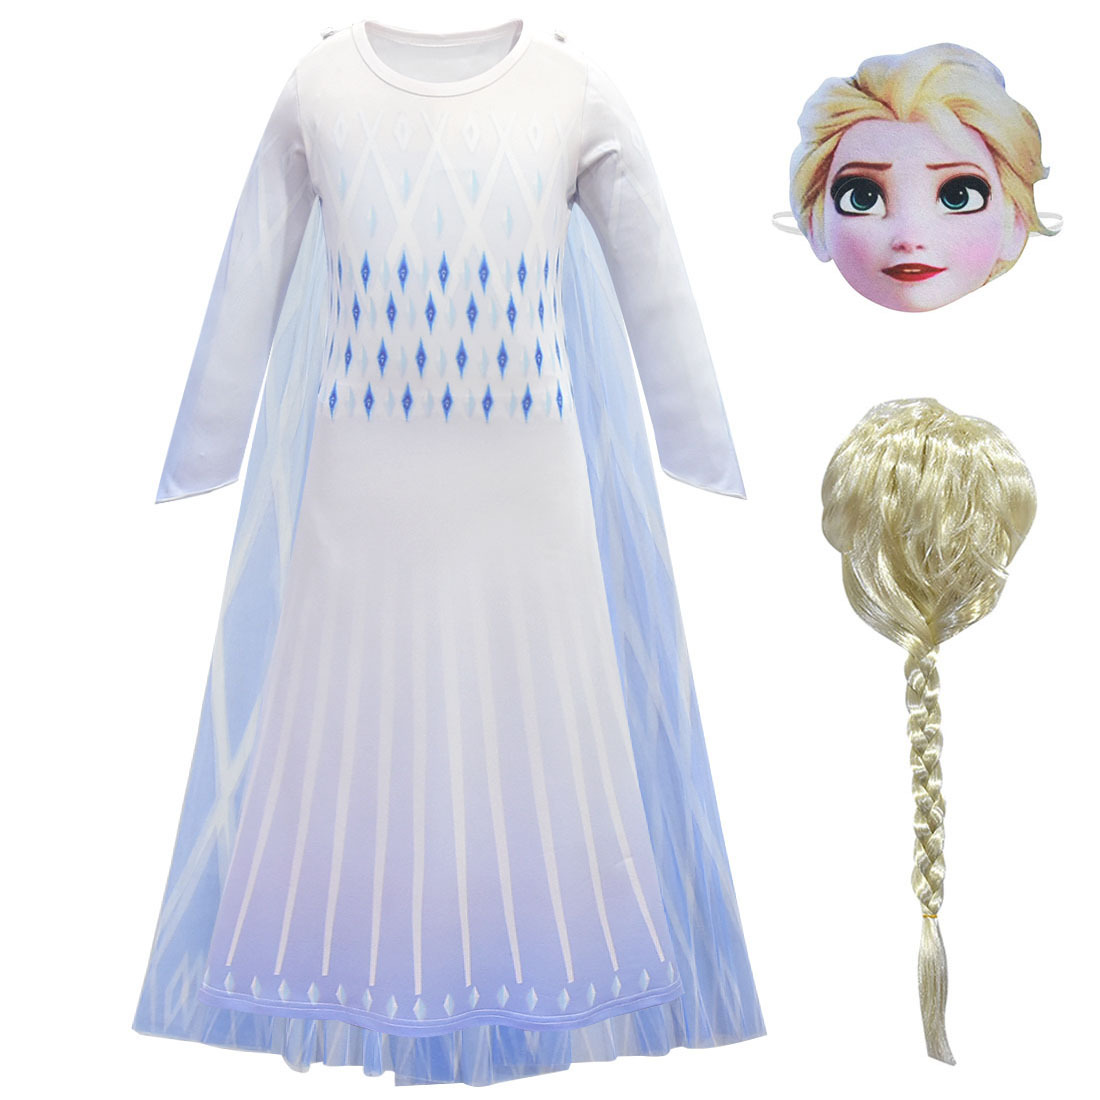 Lovely Girls Aisha Princess Dress Cosplay Costume Christmas Party Stage Show Kid Clothing Crown Magic Stick Prop C65K37